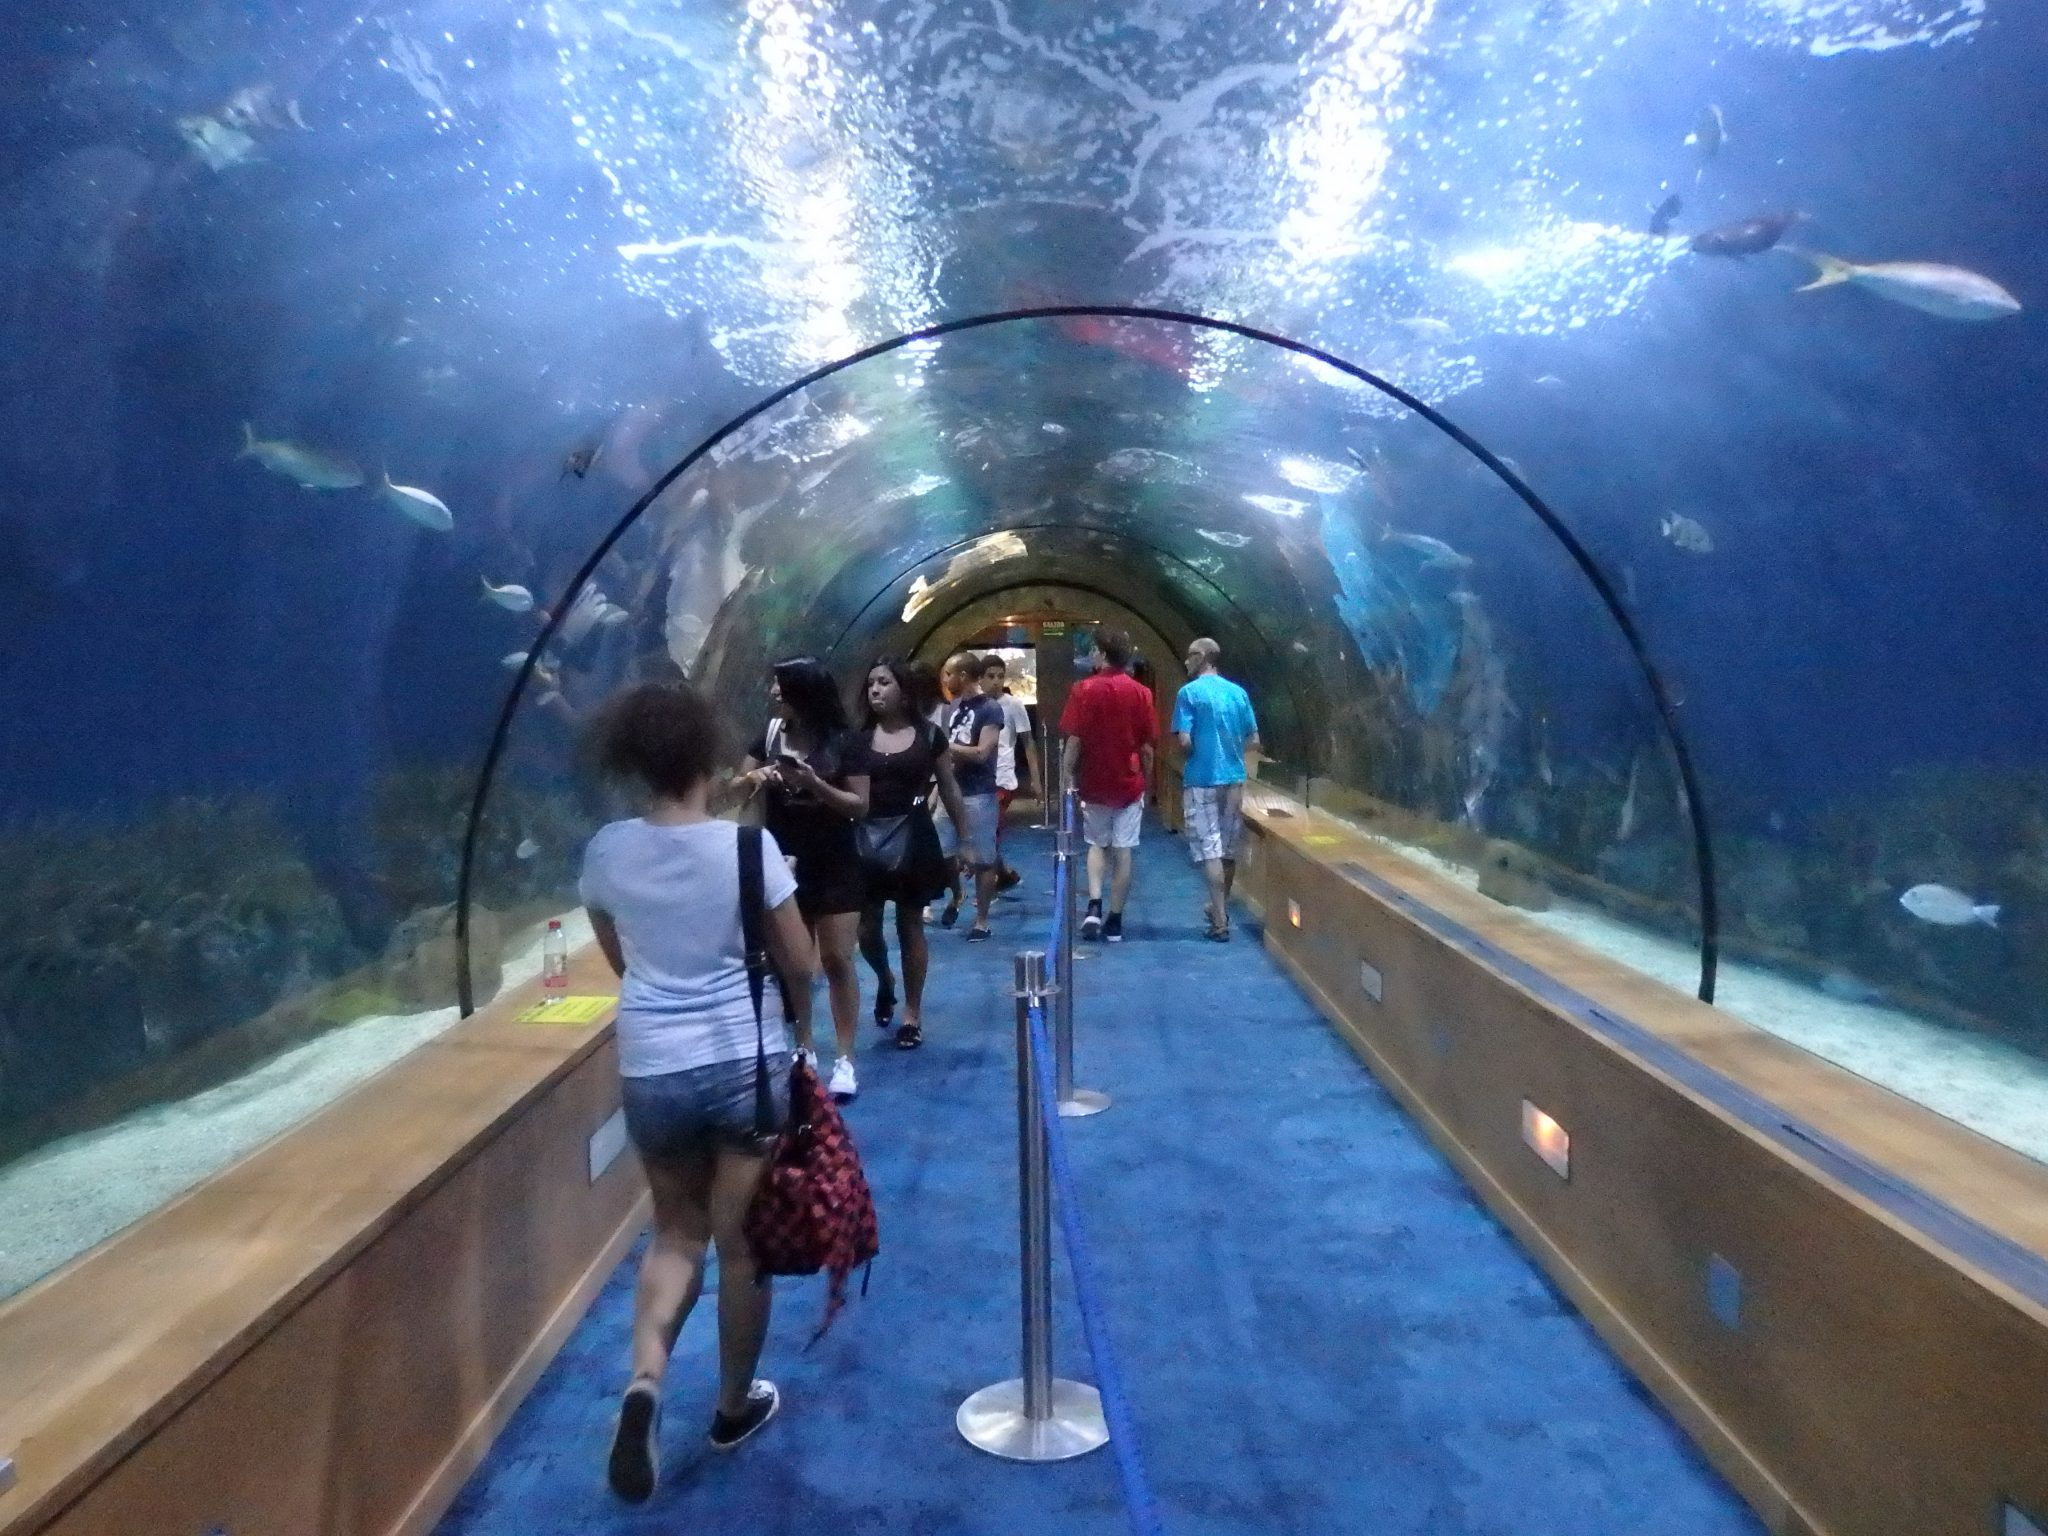 the tunnel in the aquarium at the City of Arts and Sciences in Valencia, Spain